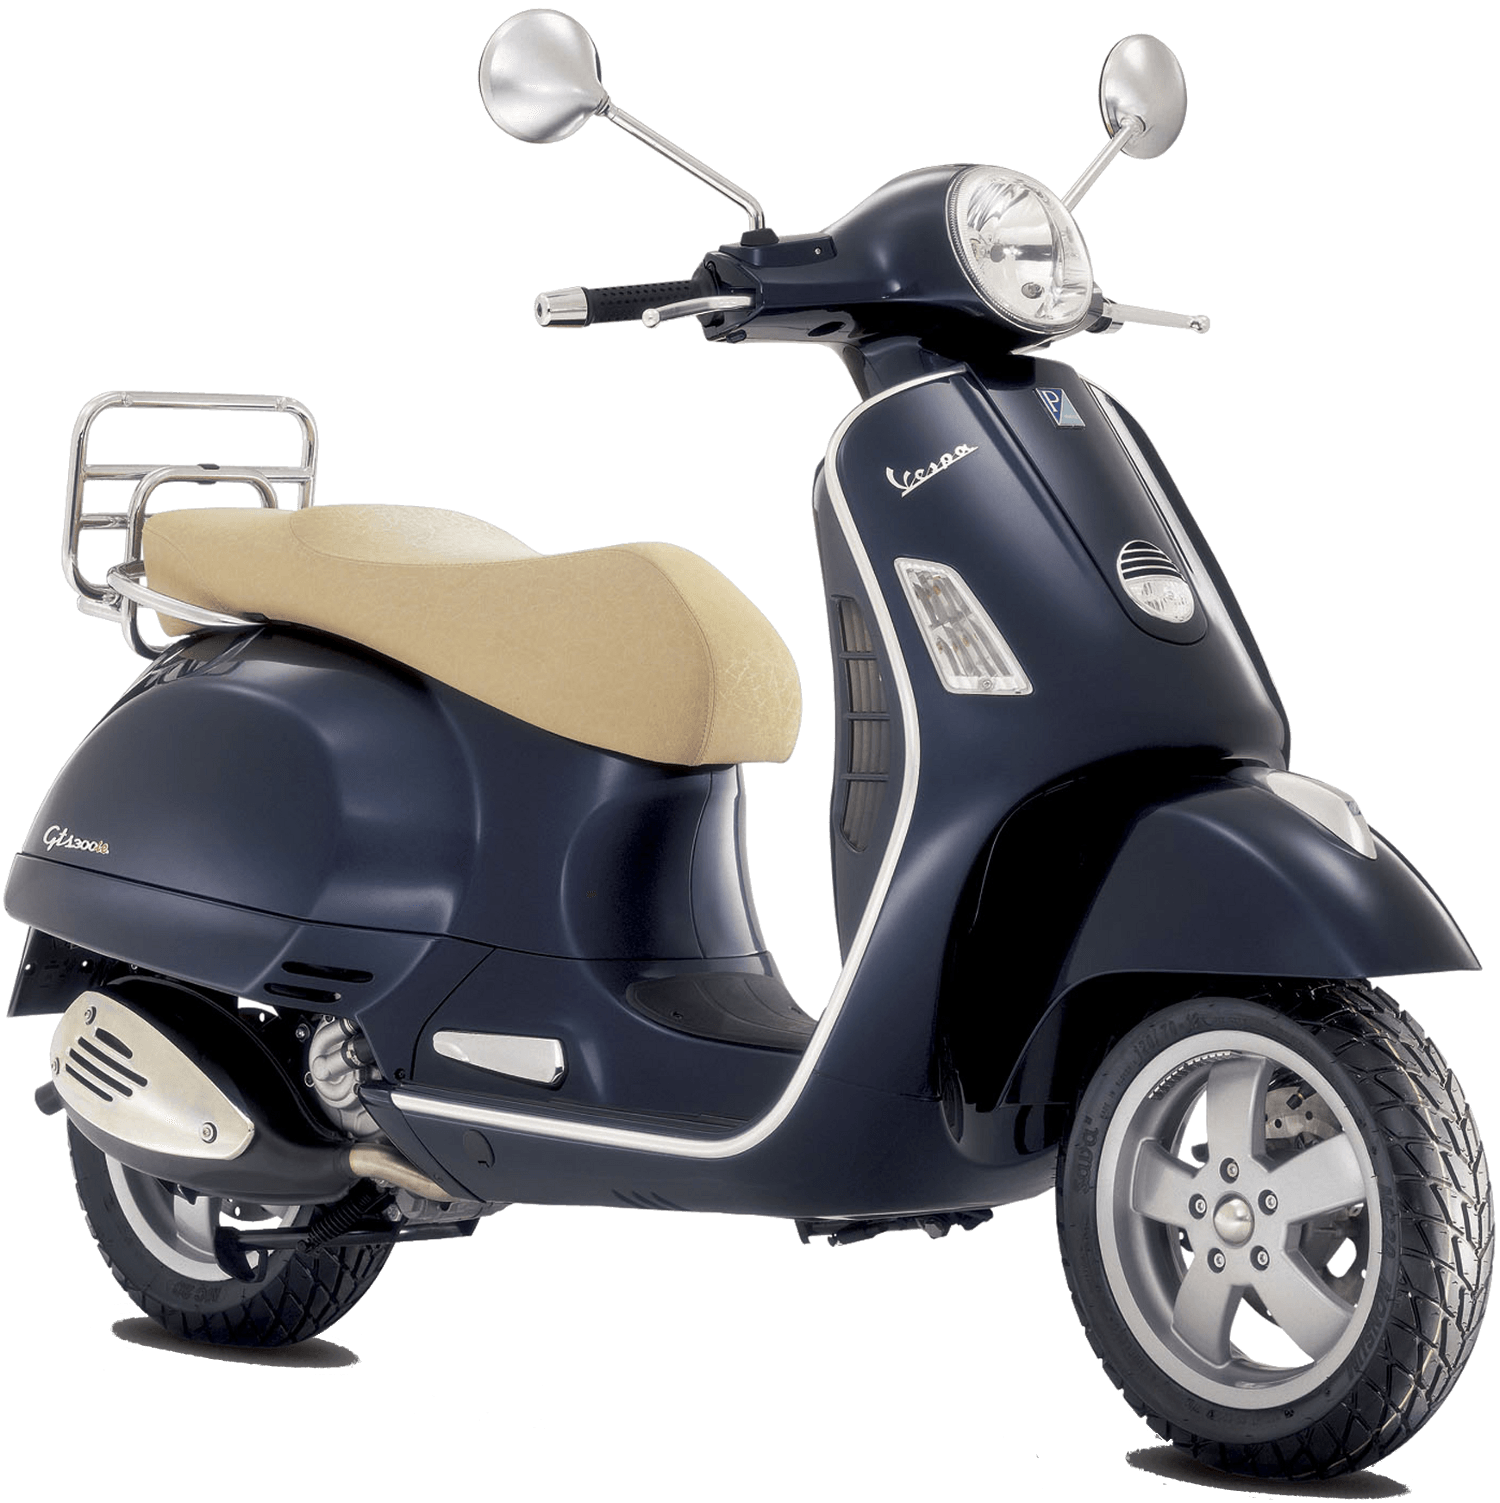 Vintage transparent png stickpng. Scooter clipart retro scooter